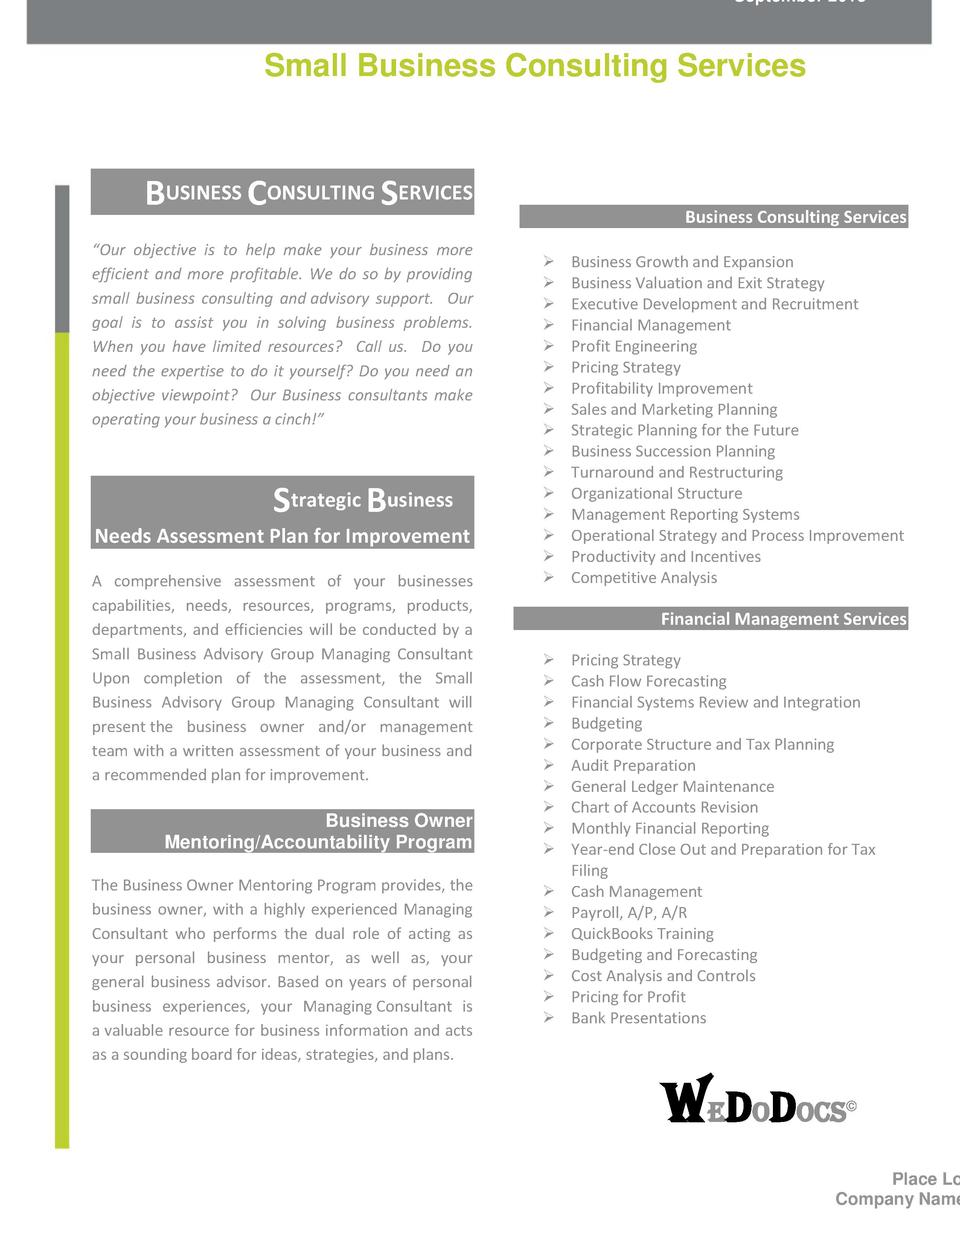 Pricing brochure simplebooklet september 2013 small business consulting services business consulting services our objective is to help make your solutioingenieria Images